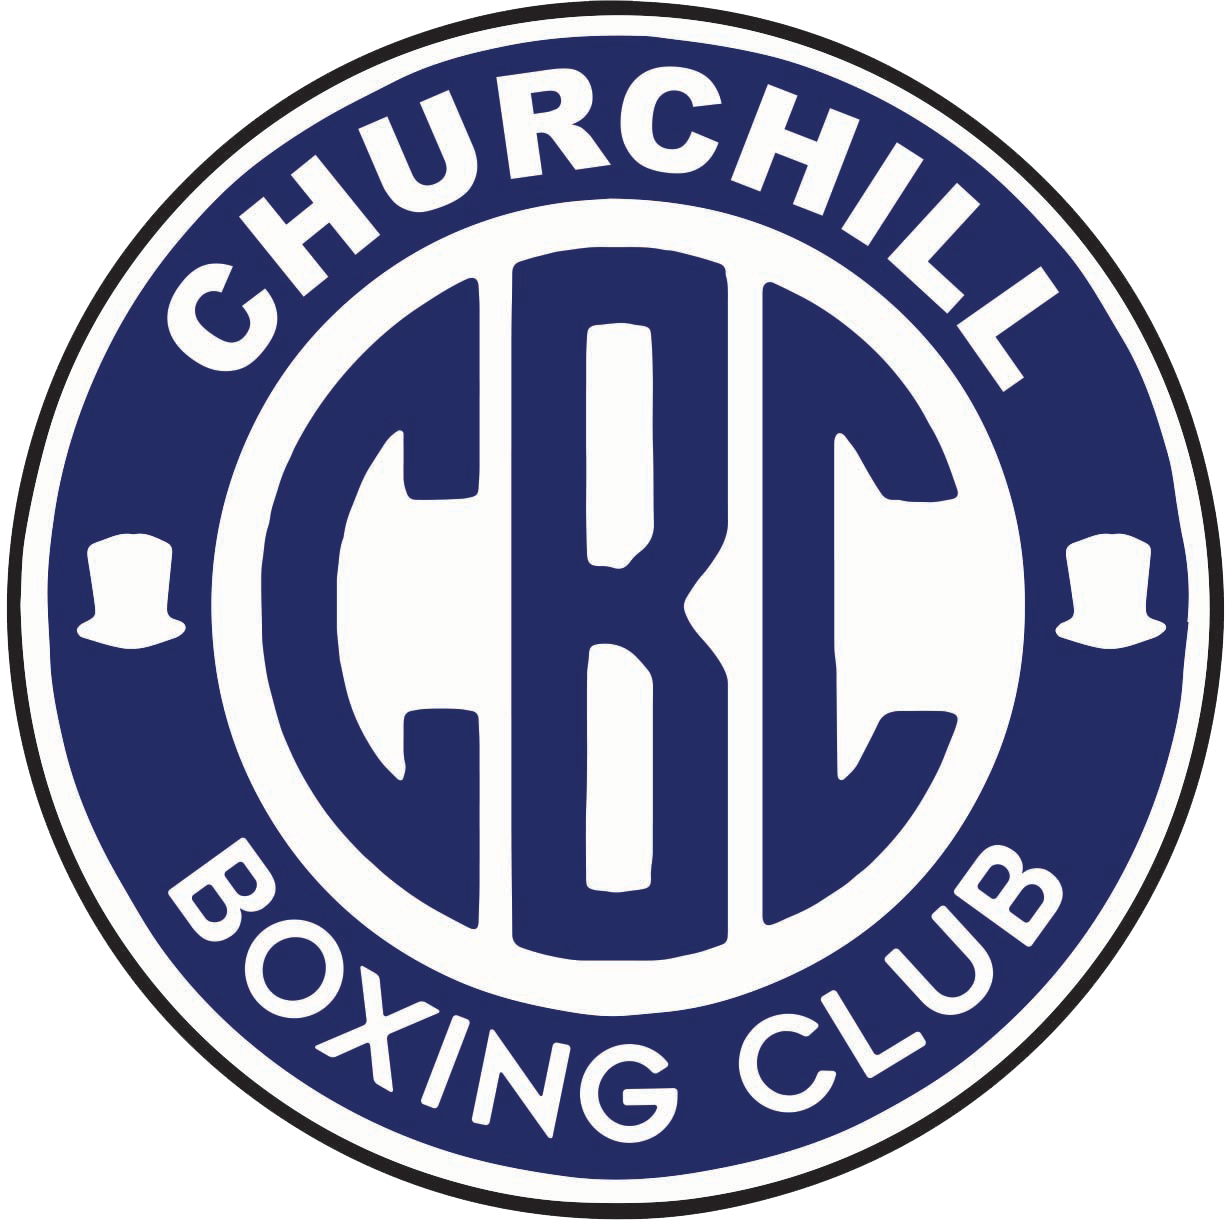 CHURCHILL BOXING